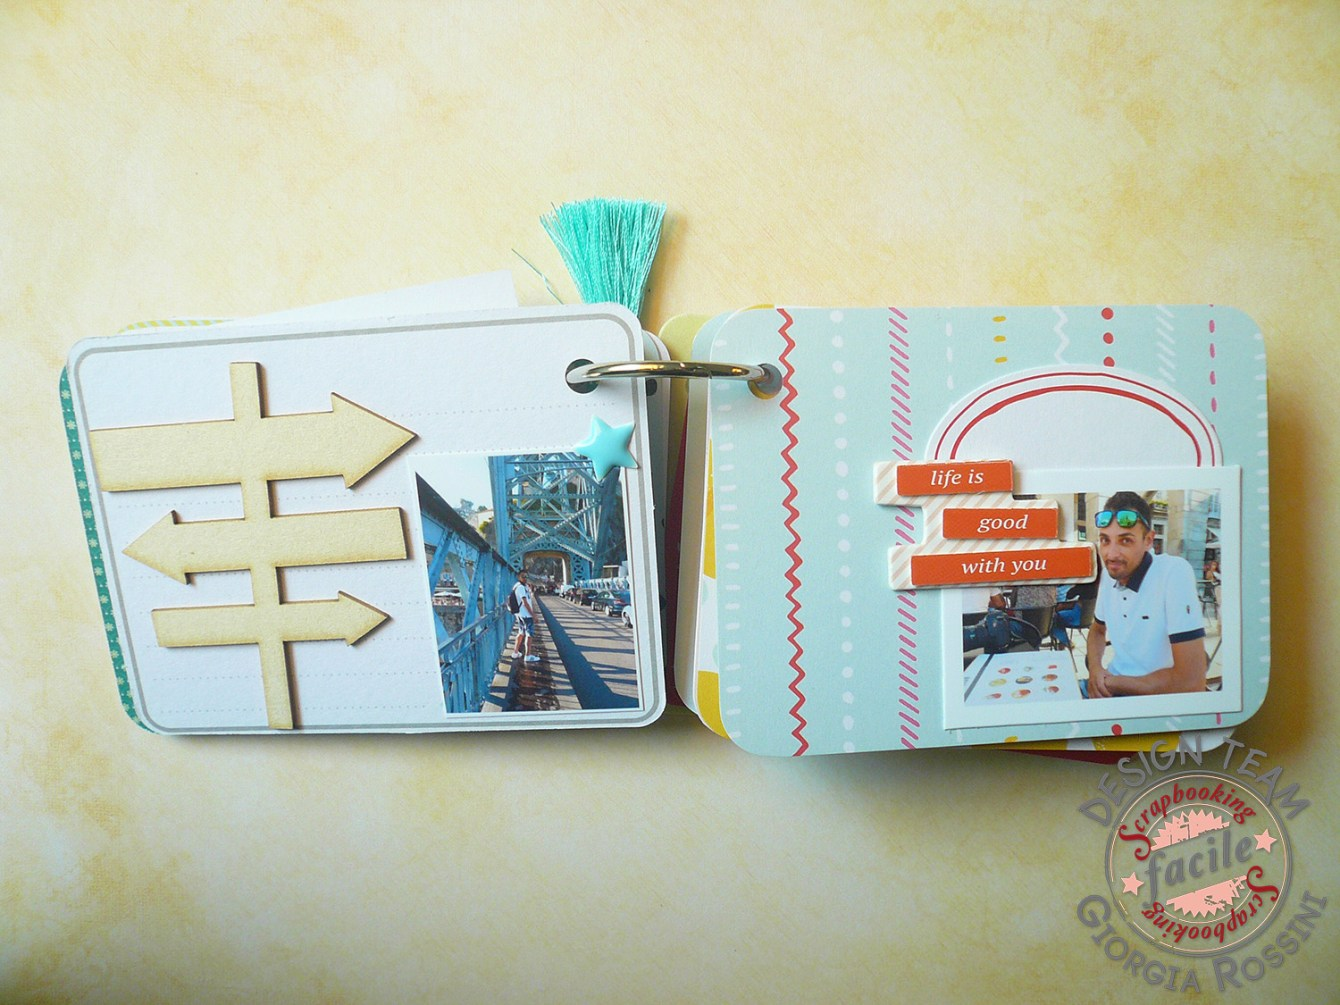 Giorgia Rossini for Scrapbooking facile